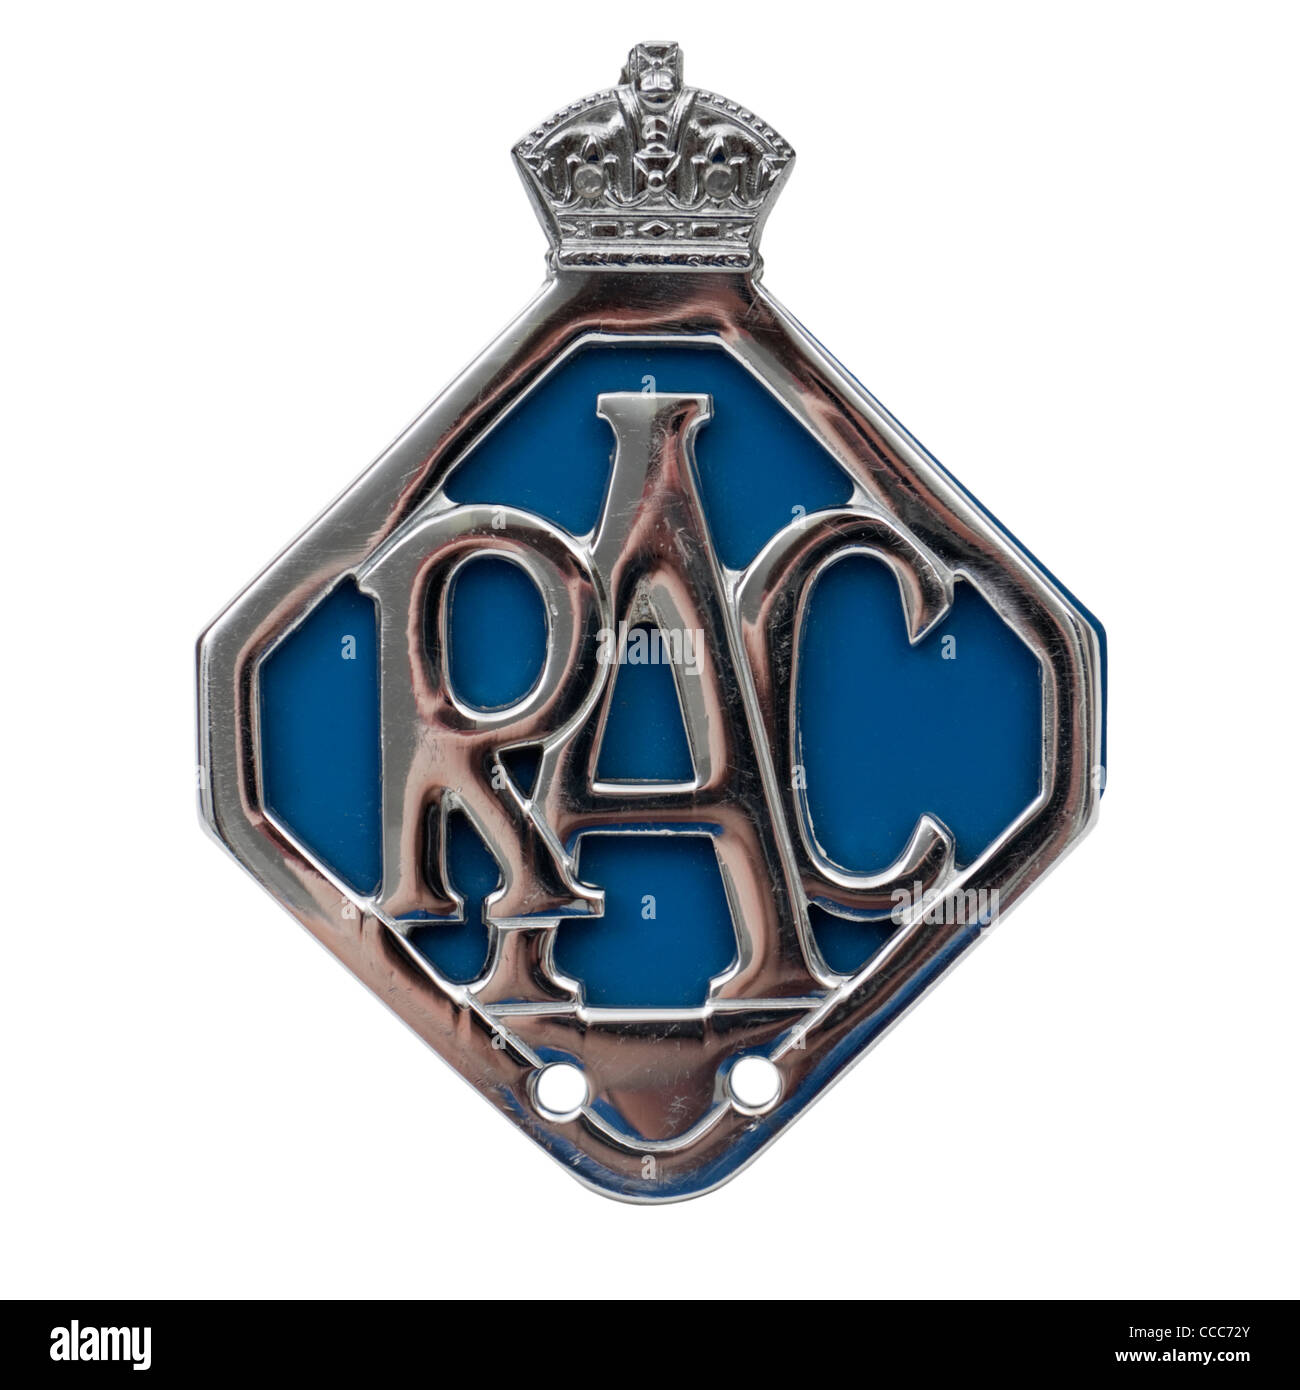 Rac car badge dating